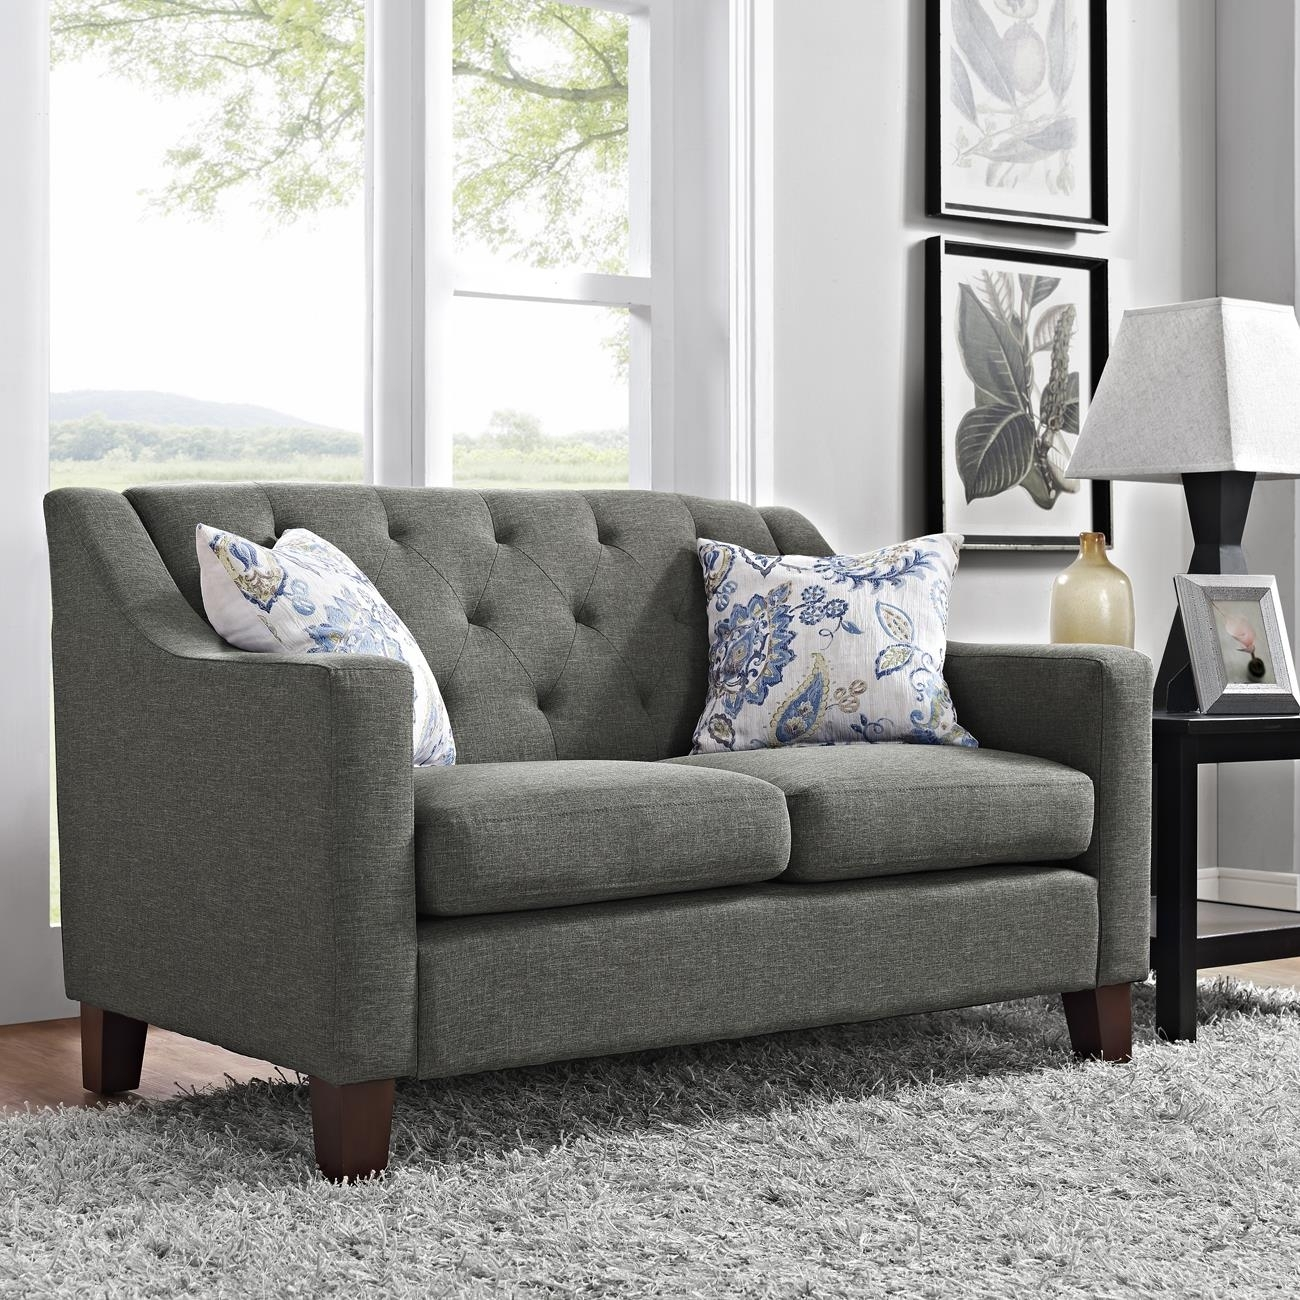 Bedroom Couch Ikea Ideas — Cabinets, Beds, Sofas And Morecabinets With Bedroom Sofas (Image 2 of 10)